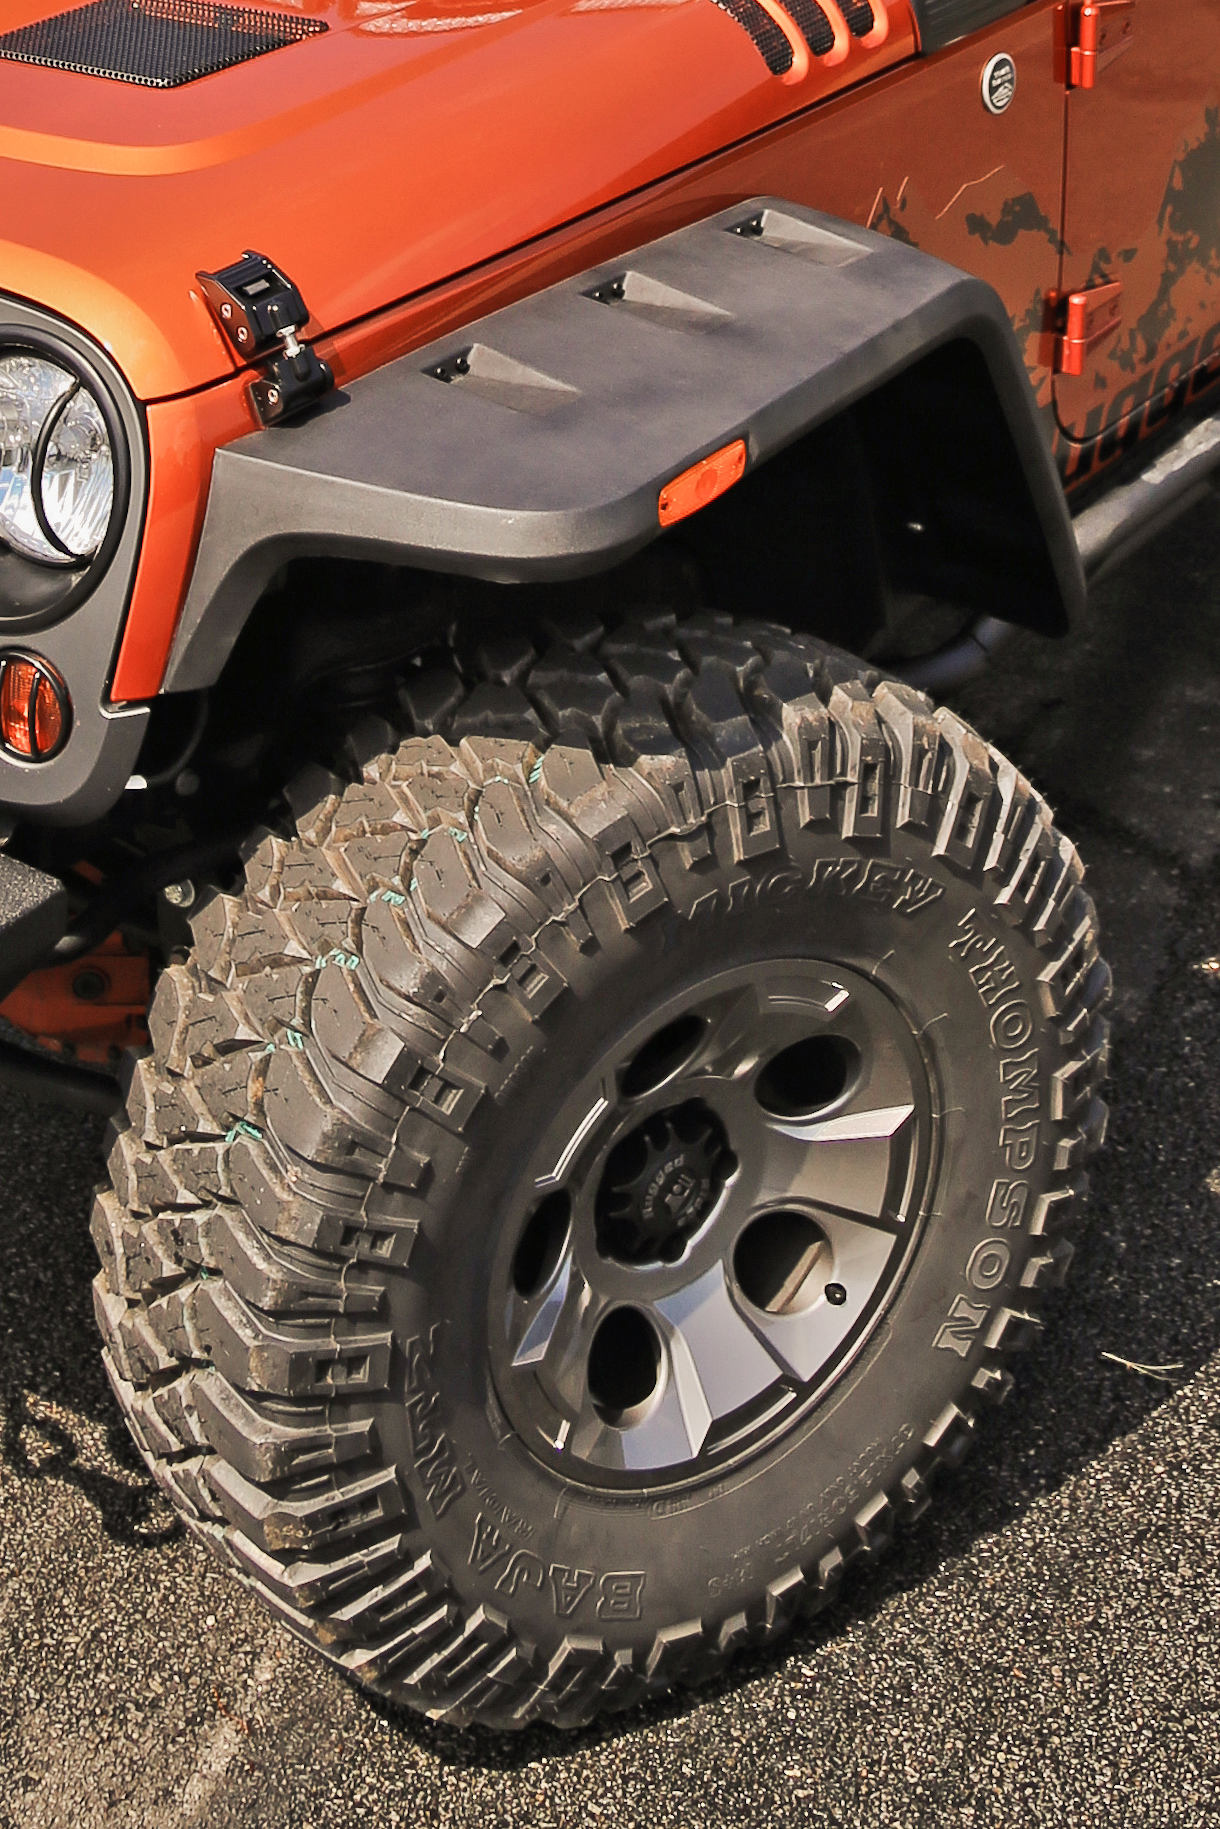 Rugged Ridge Expands Line Of Vintage Inspired Fender Flares To Installing Jeep Proven Way Protect Your Jeeps Paint And Bodywork From Rocks Mud Or Debris While Driving On Off Road Ridges Hurricane Flat